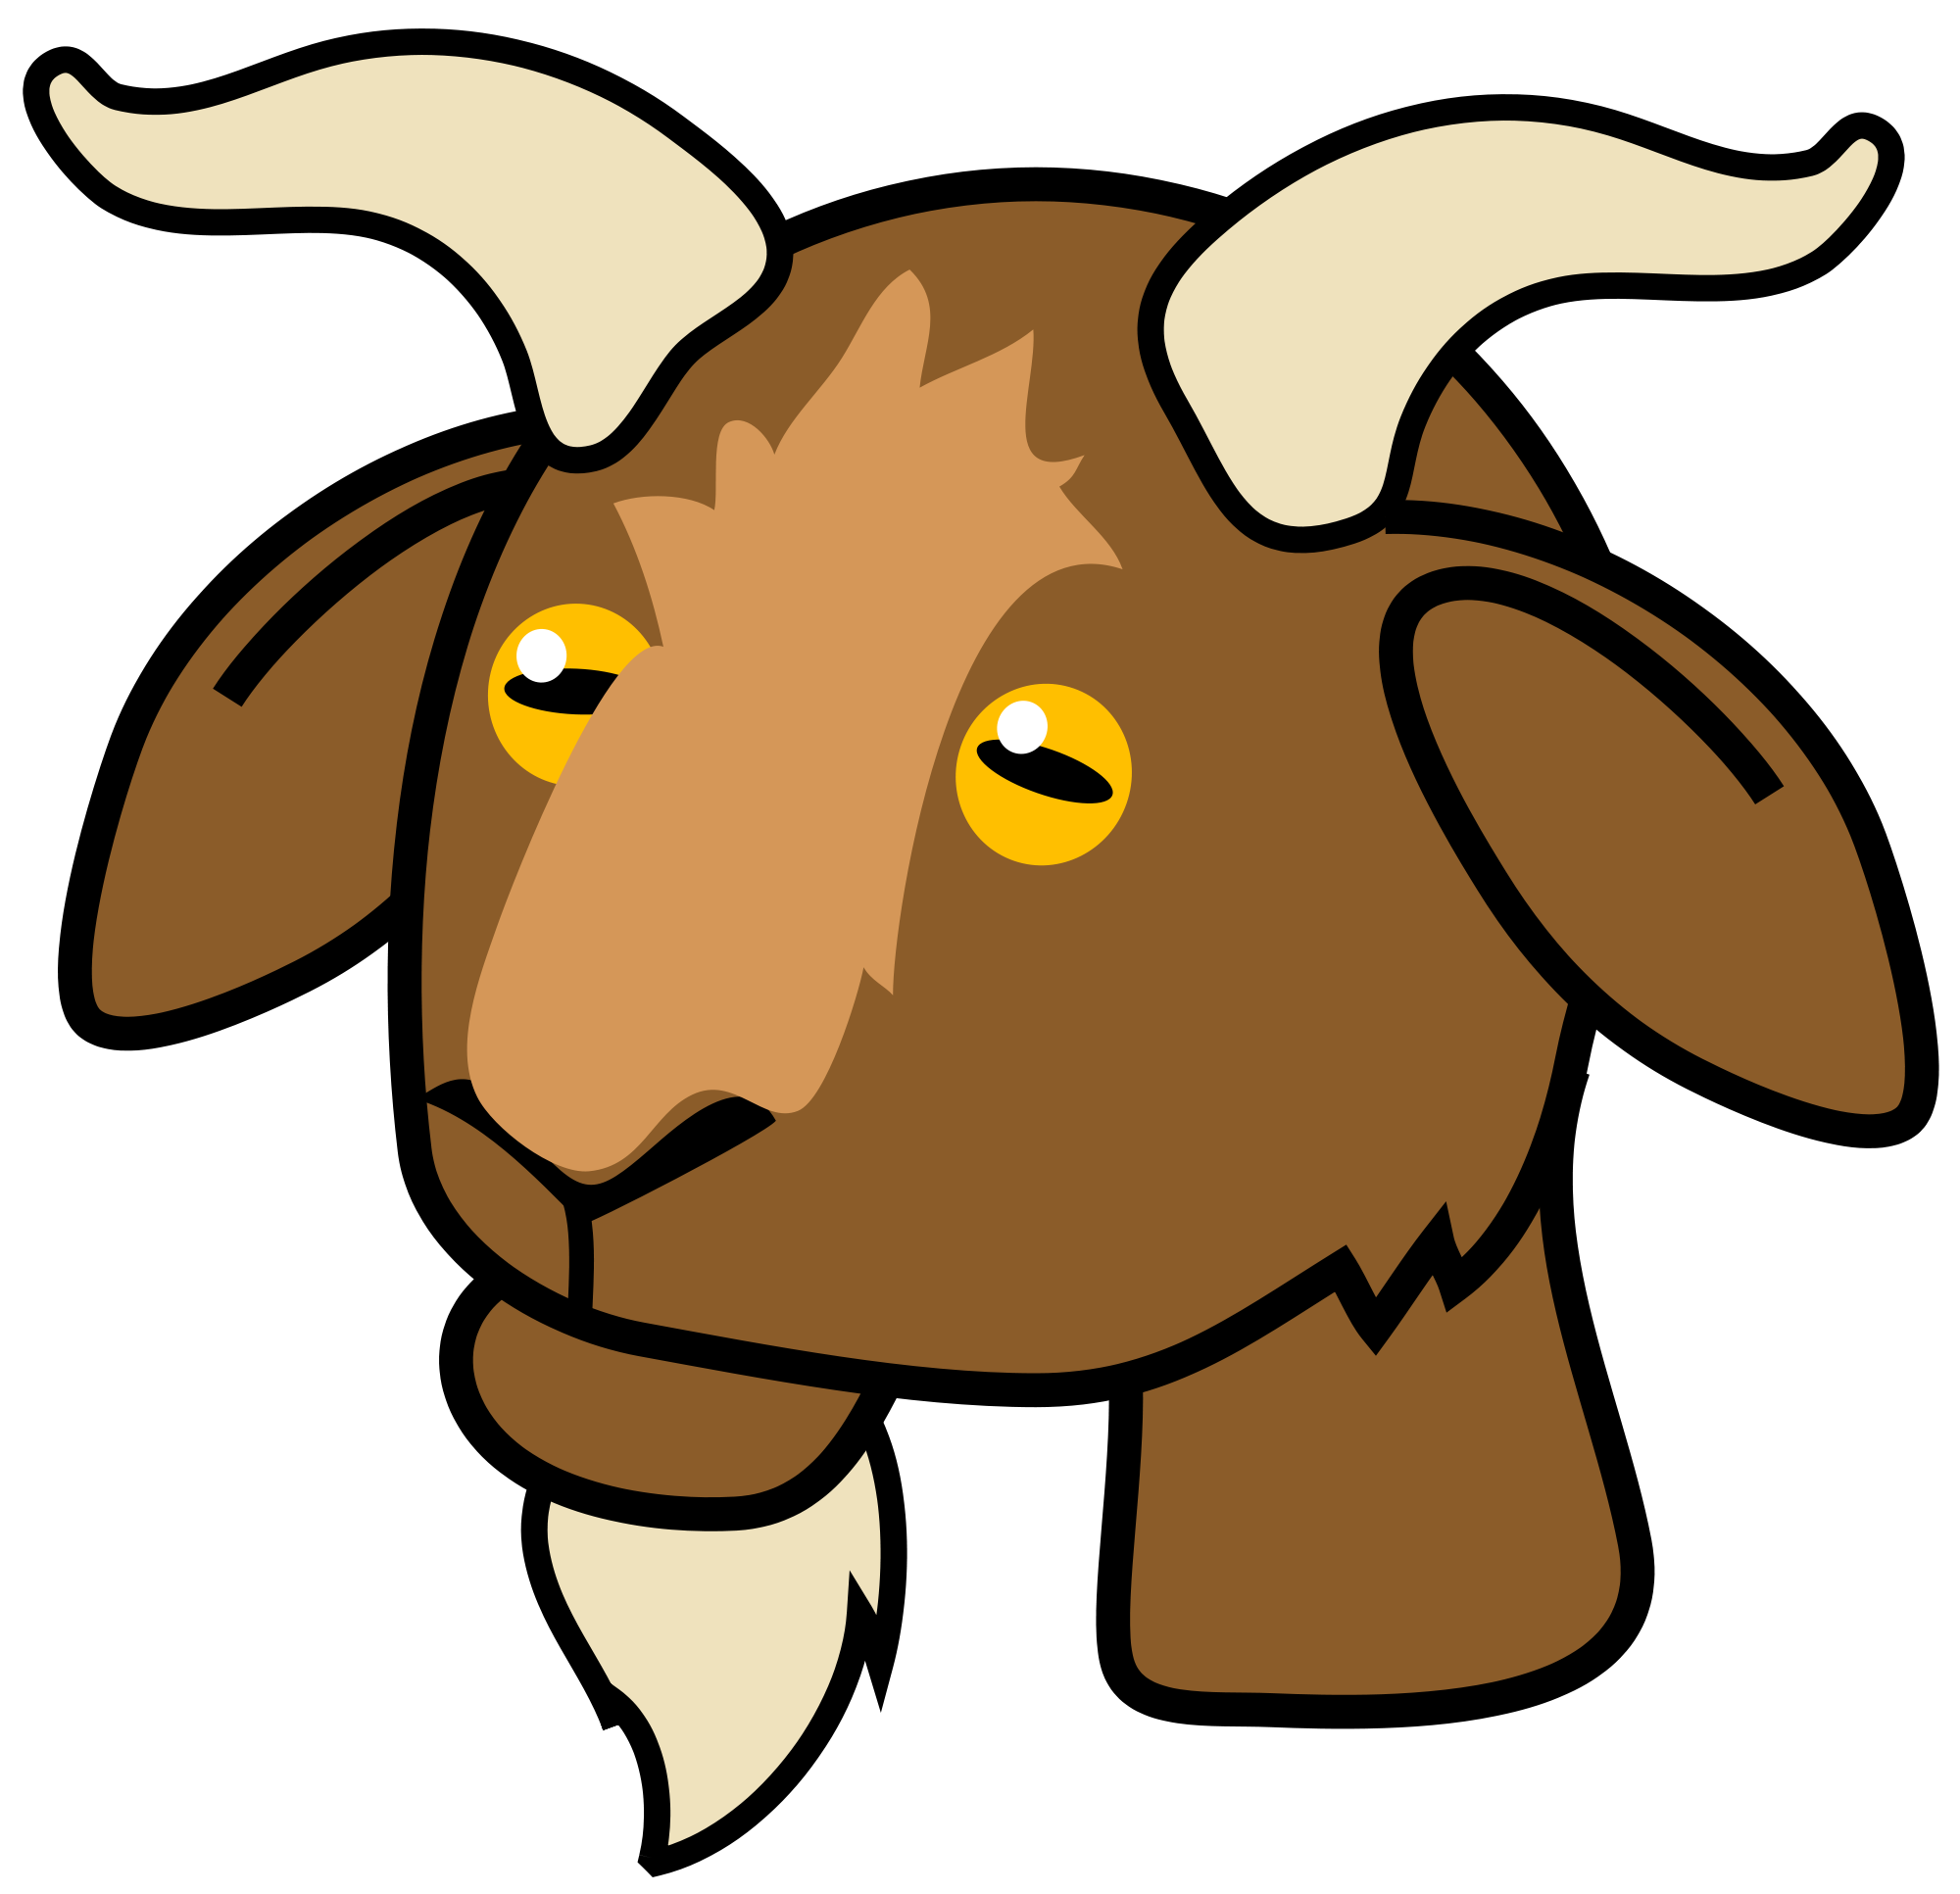 Goat svg #15, Download drawings